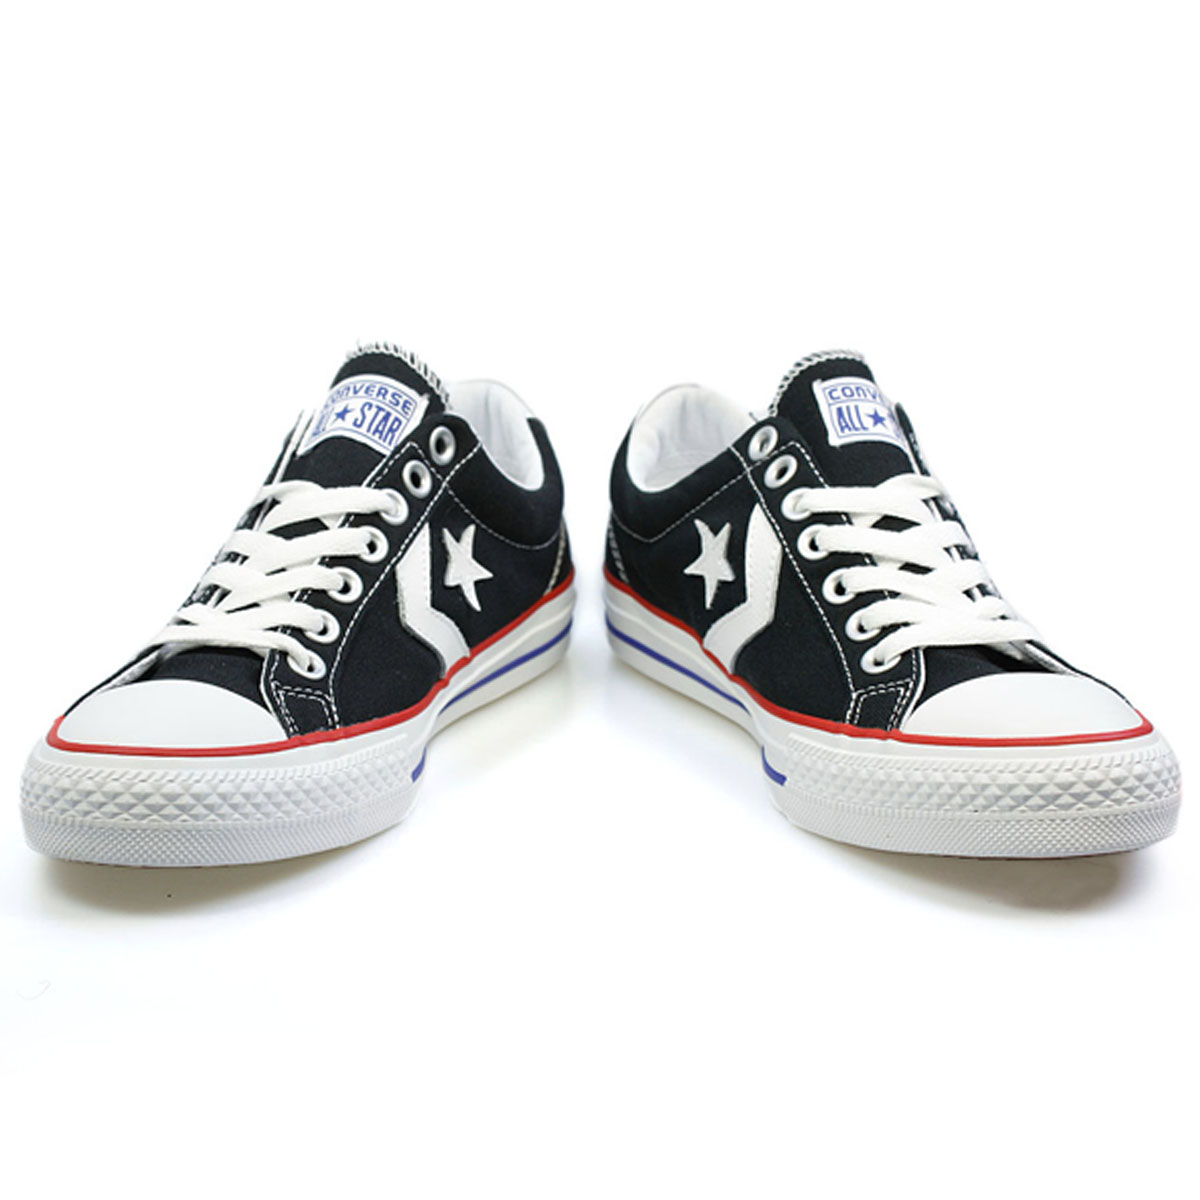 converse star player ev ox black and white canvas low top. Black Bedroom Furniture Sets. Home Design Ideas